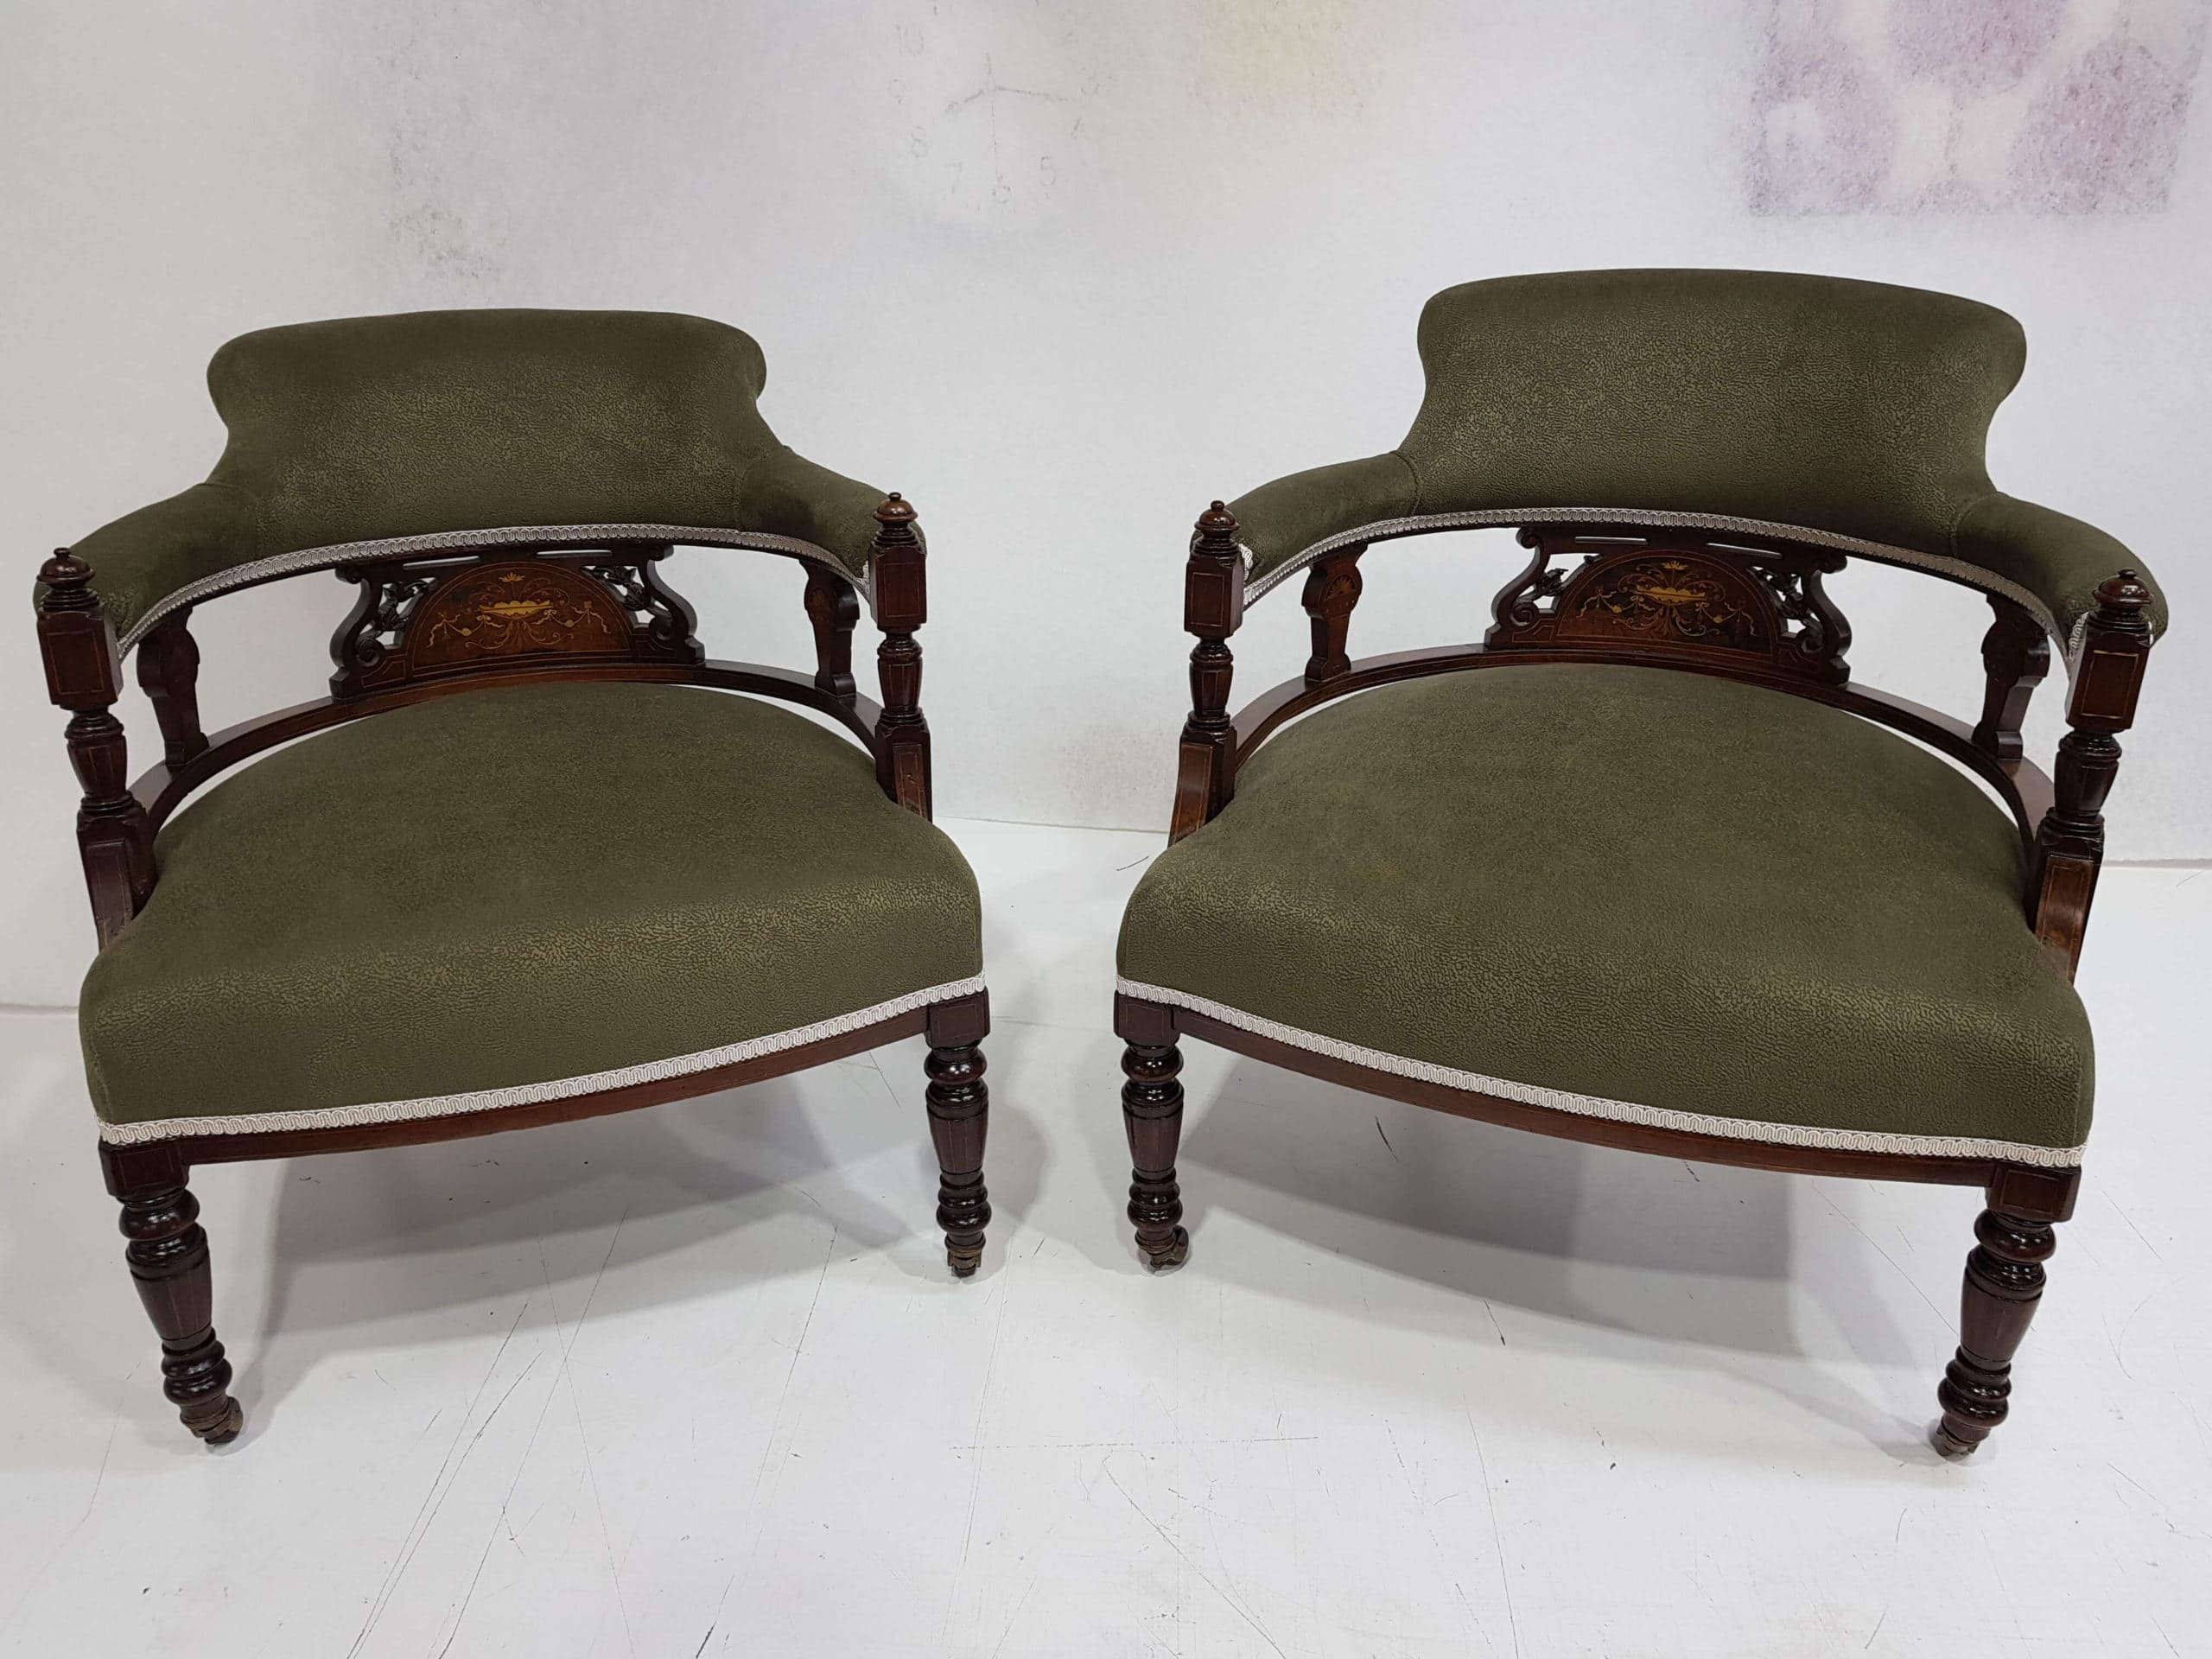 armchairs-scaled